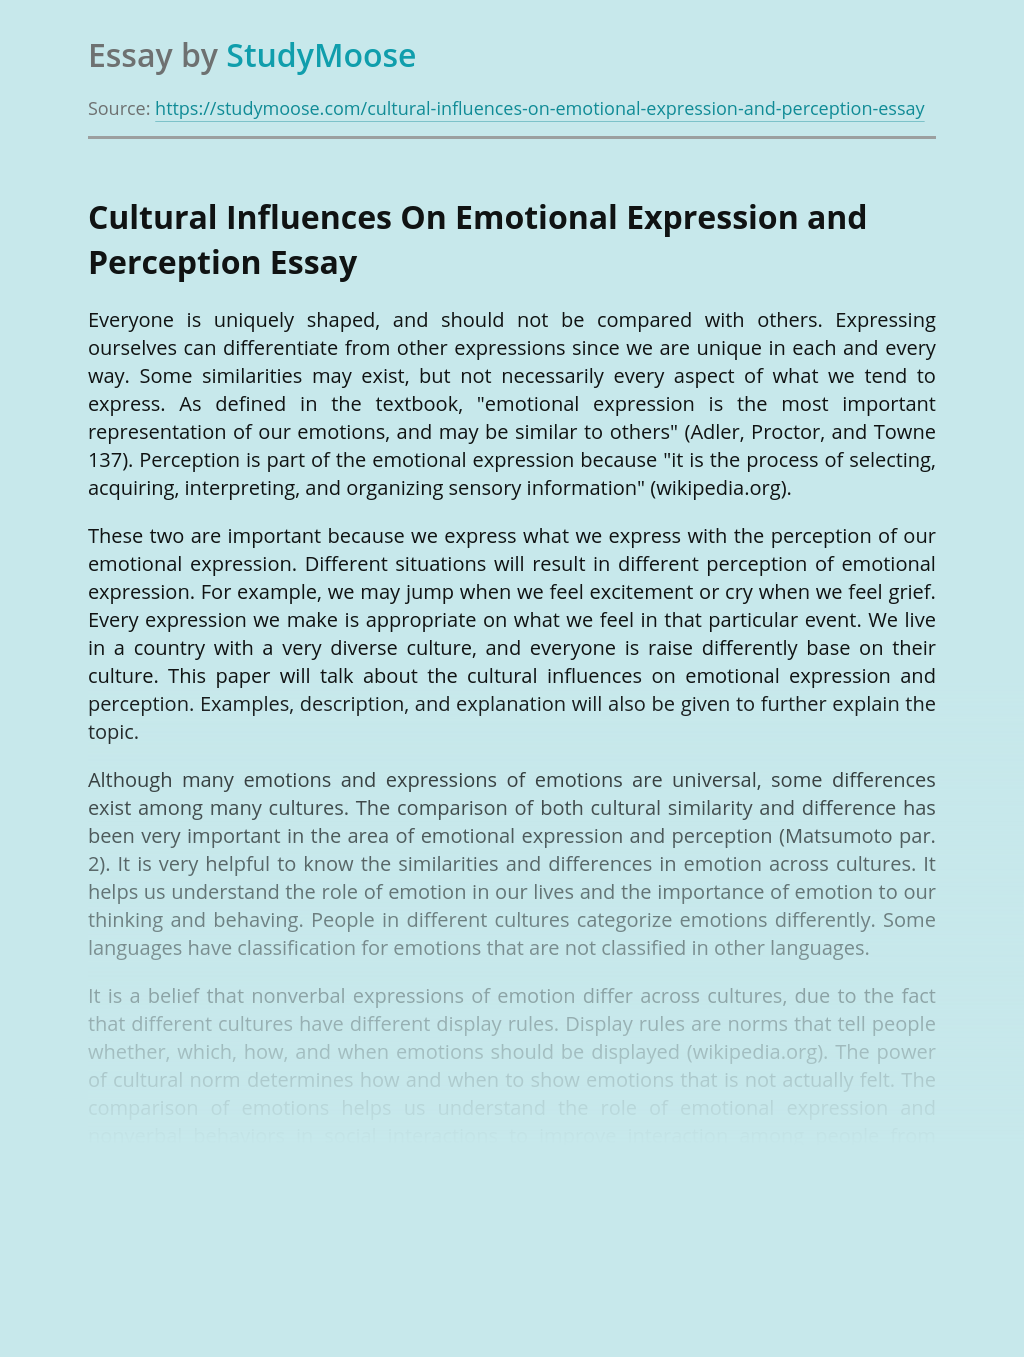 Cultural Influences On Emotional Expression and Perception